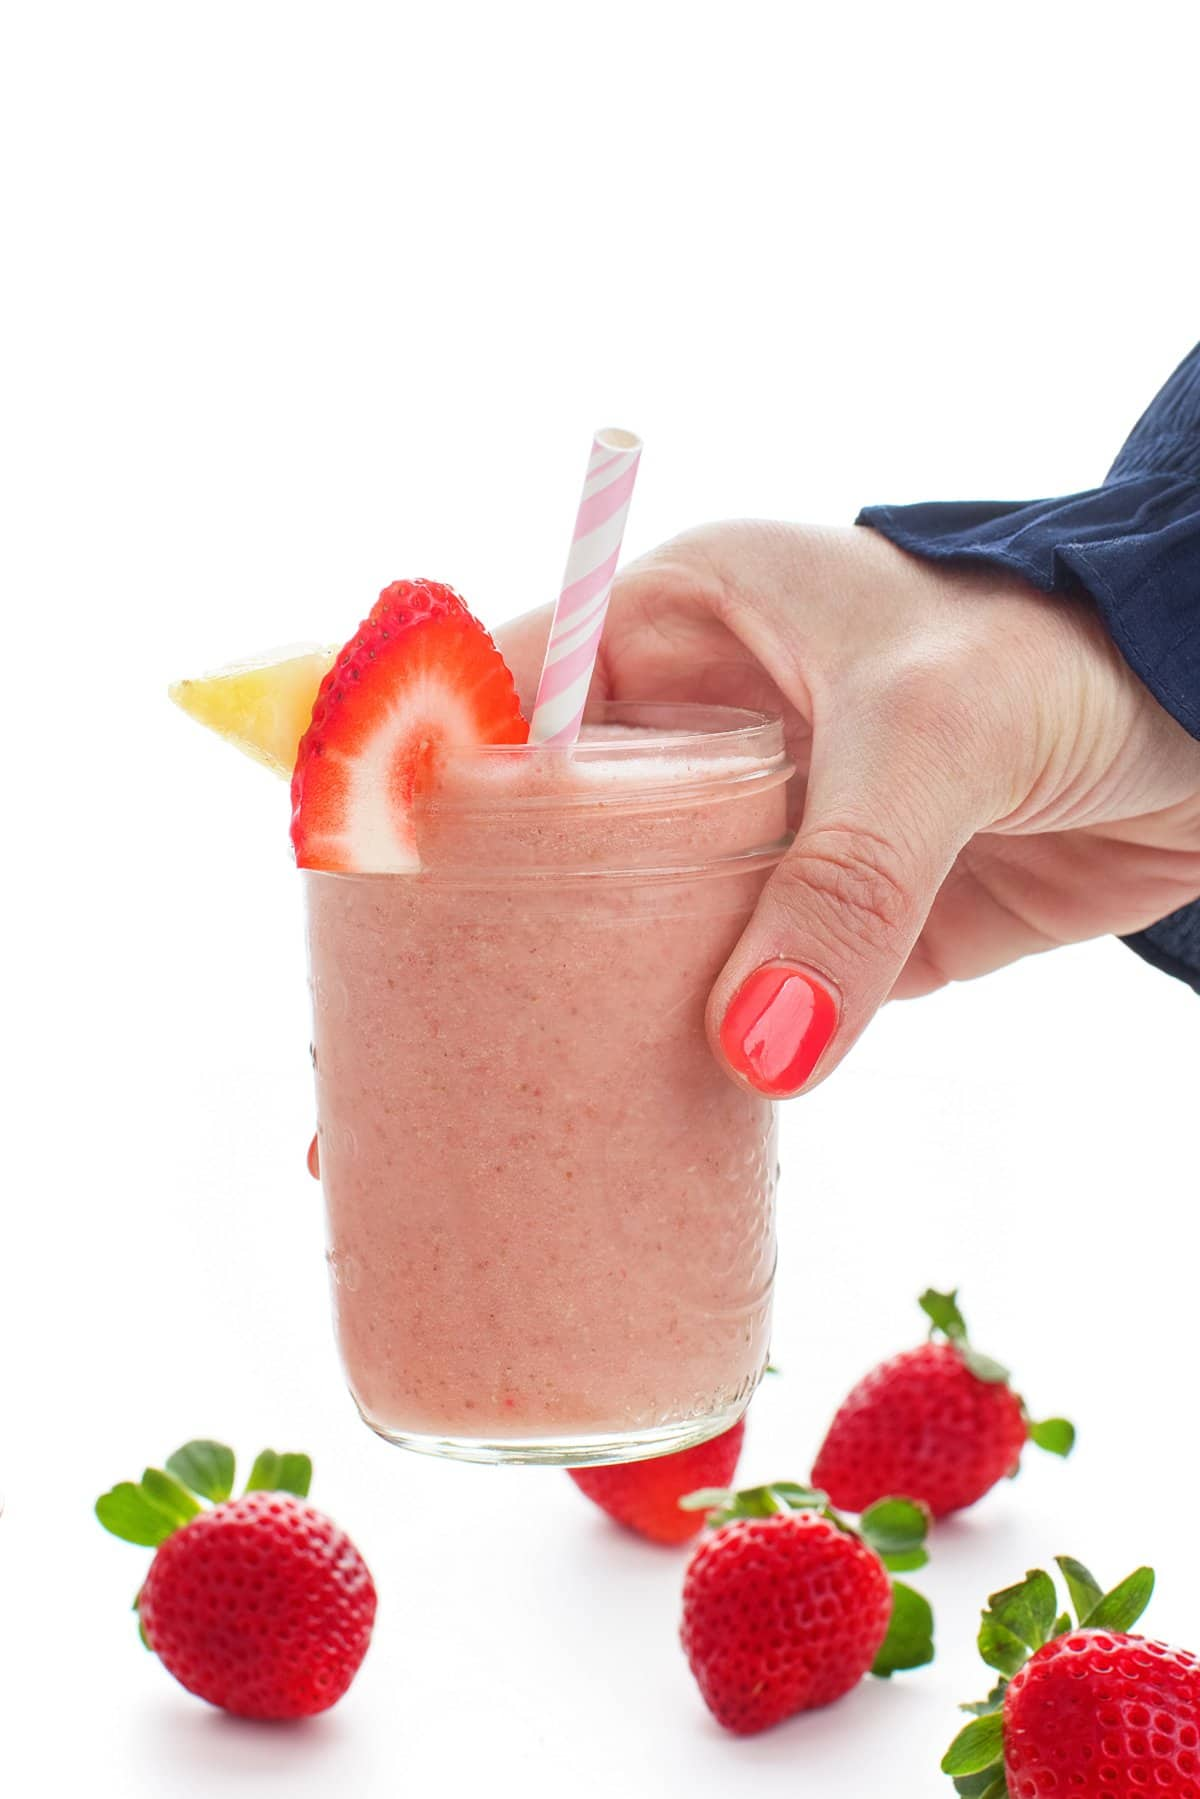 Strawberry pineapple smoothie with 5 ingredients or less.